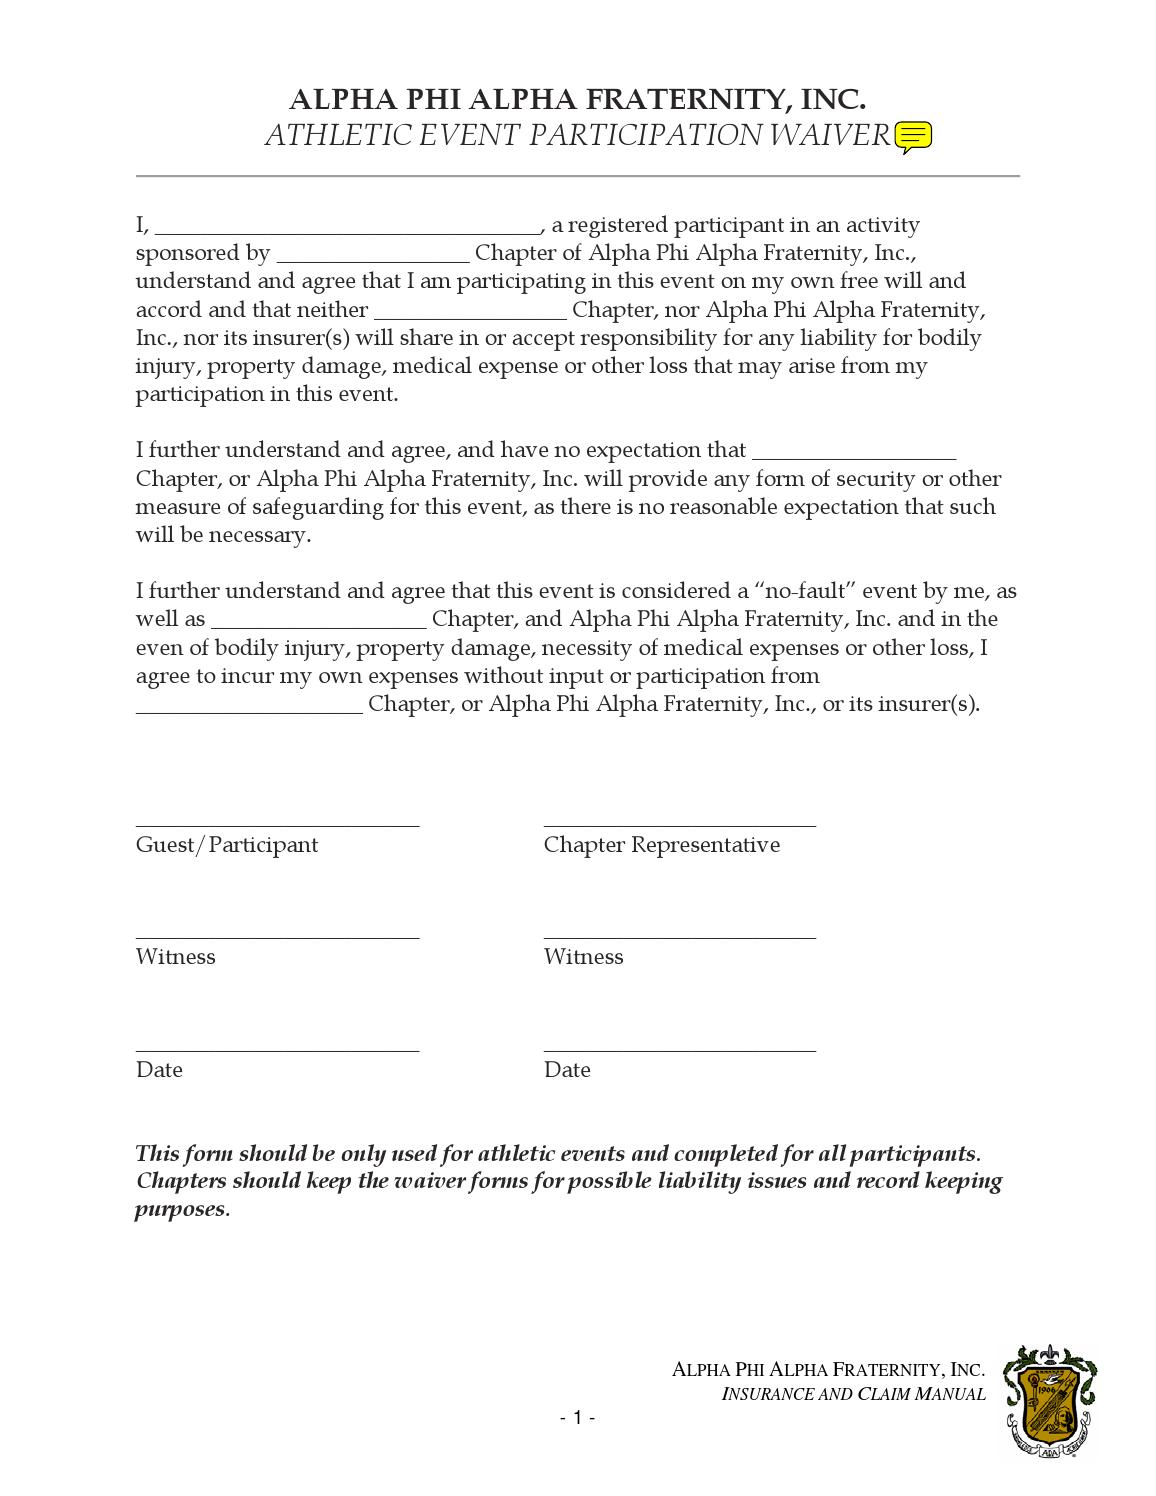 participation waiver template - athletic participation waiver by alpha phi alpha